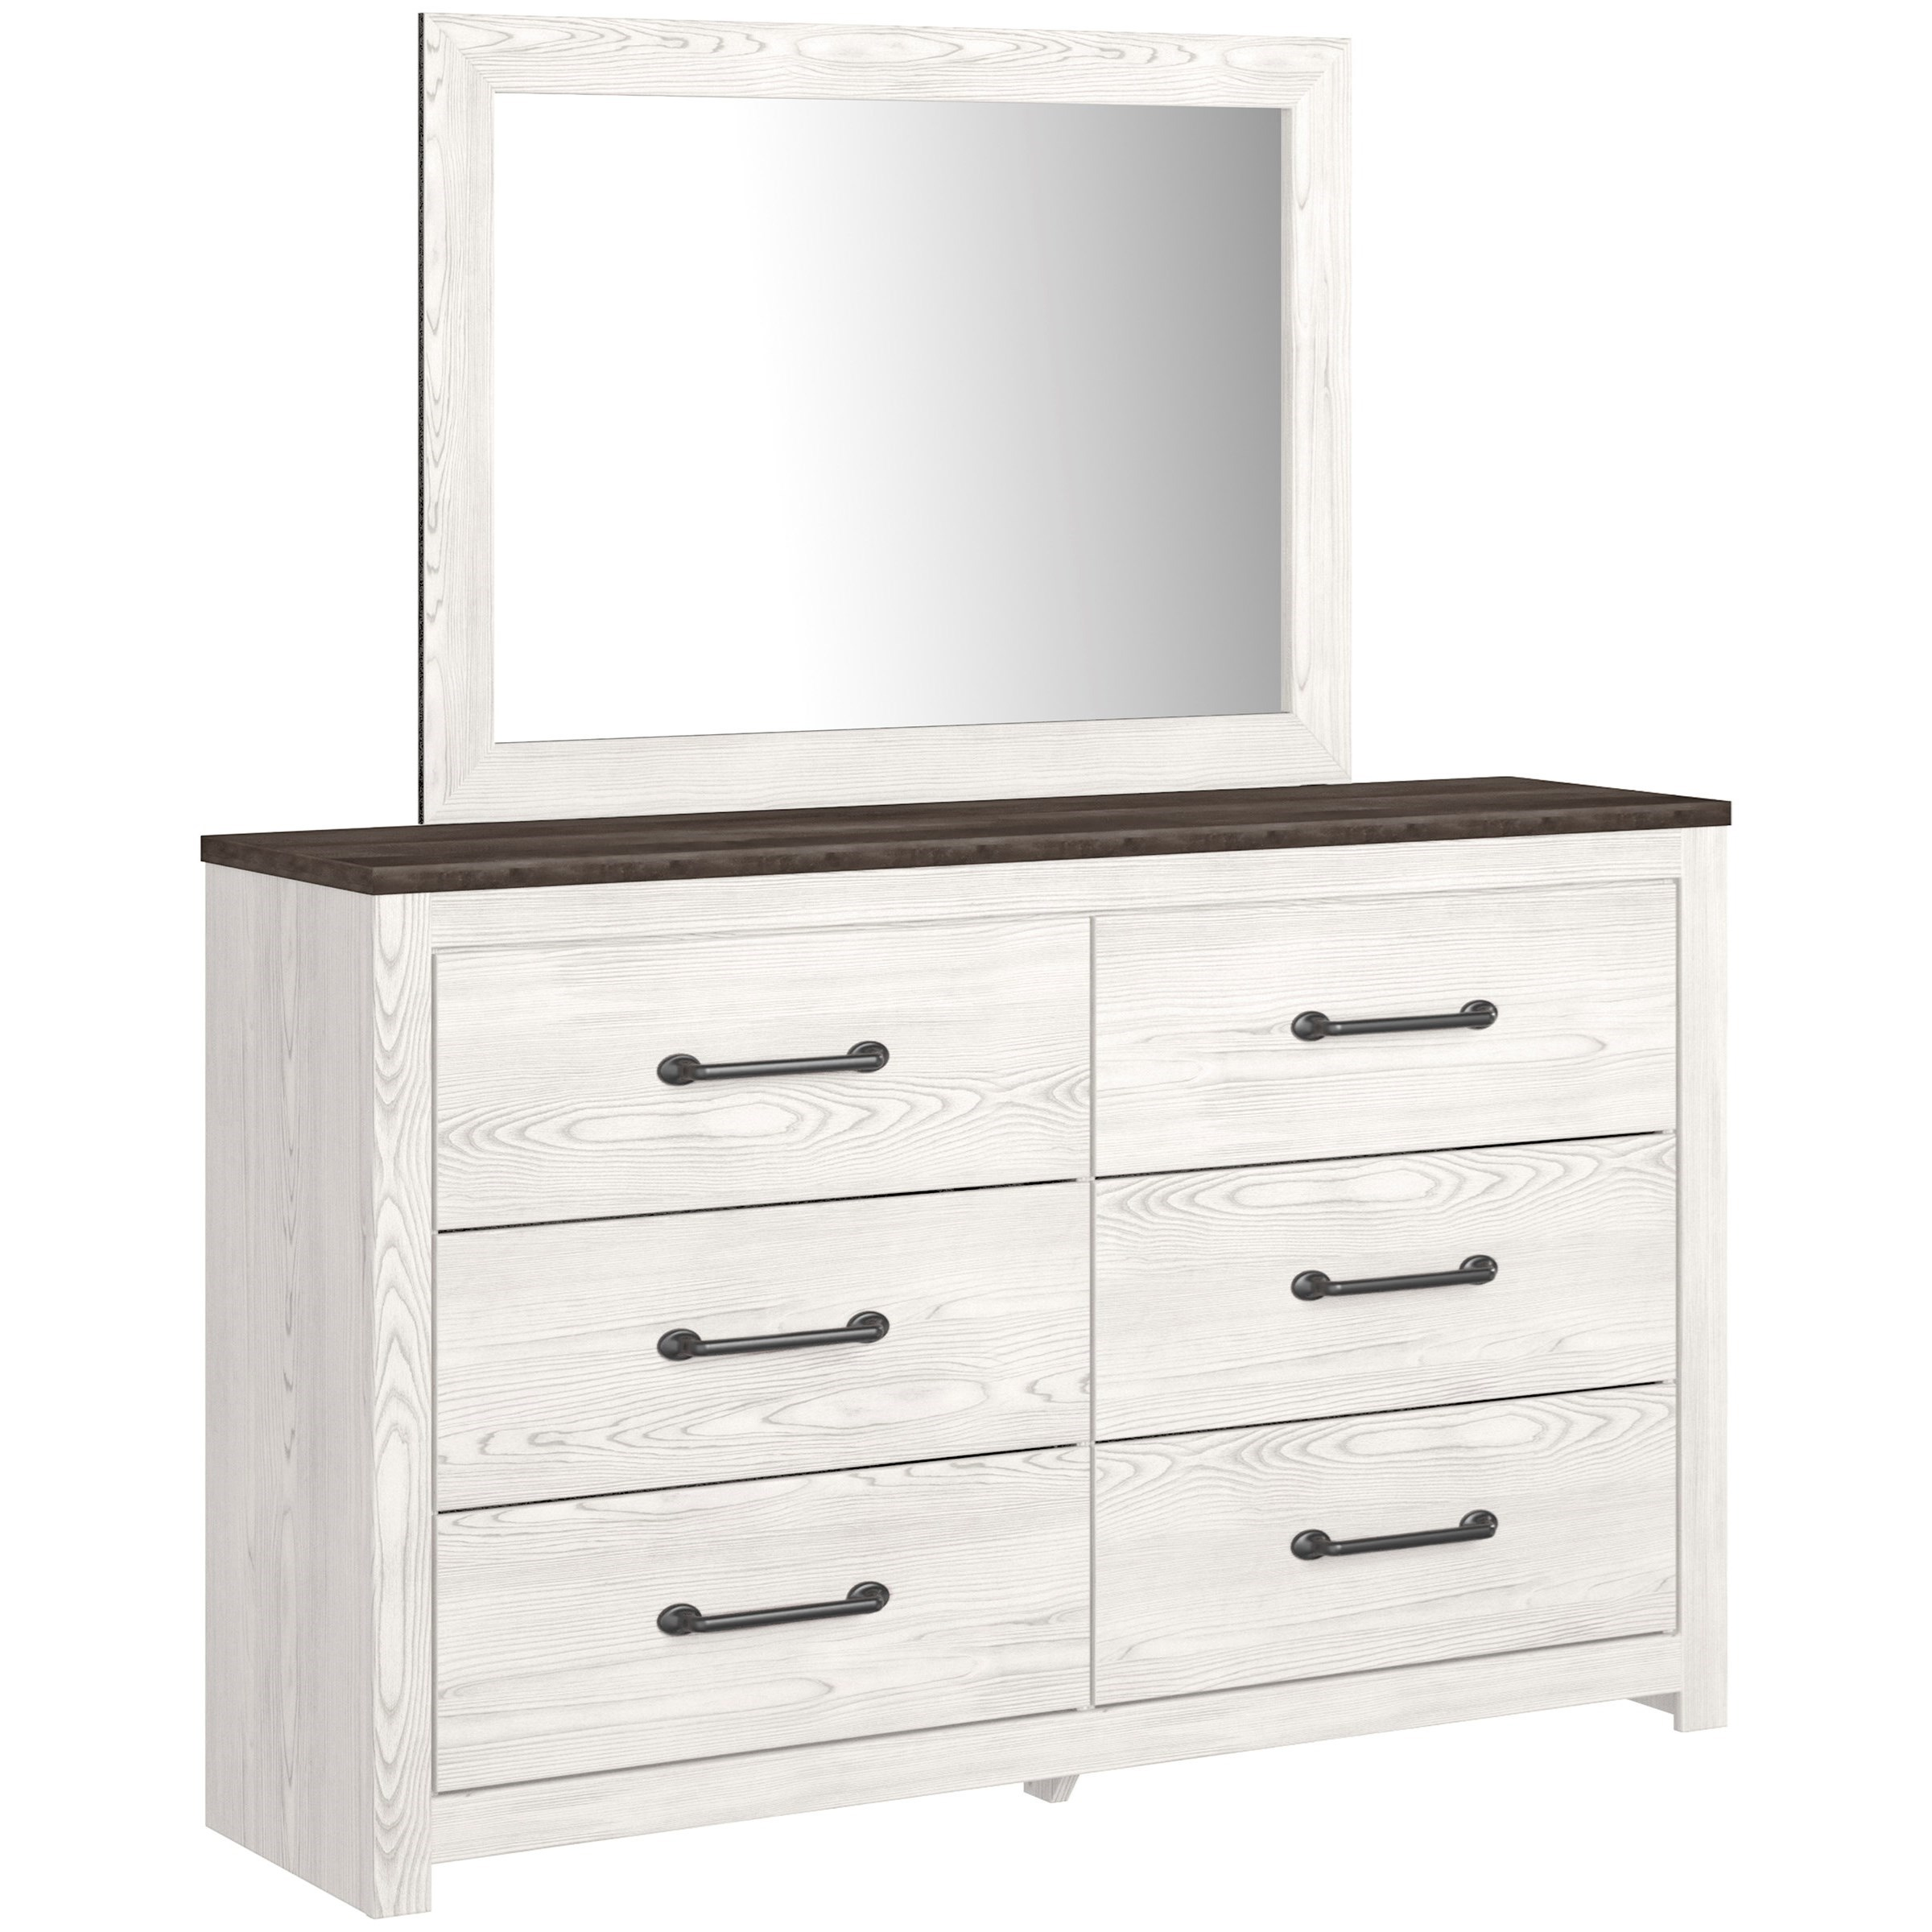 Gerridan Dresser & Bedroom Mirror by Signature Design by Ashley at Northeast Factory Direct